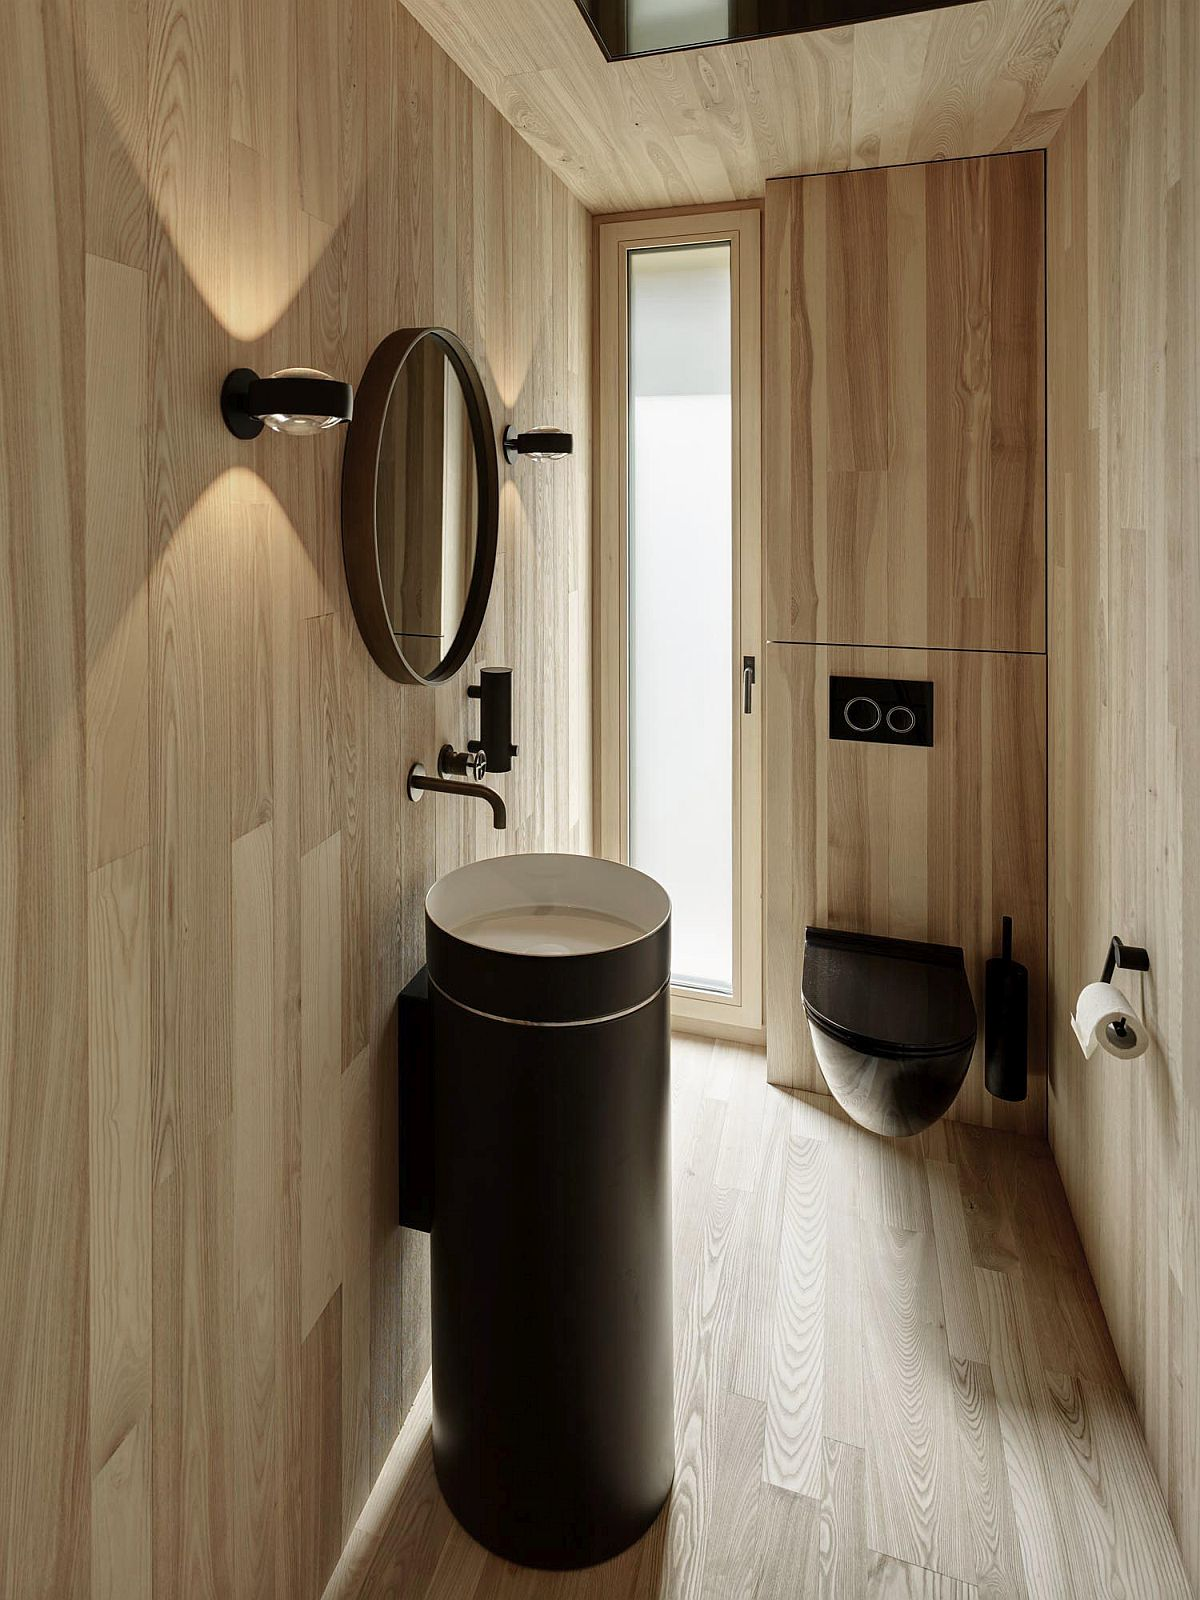 Contemporary bathroom fittings are combined with wooden walls to create an exceptional bathroom